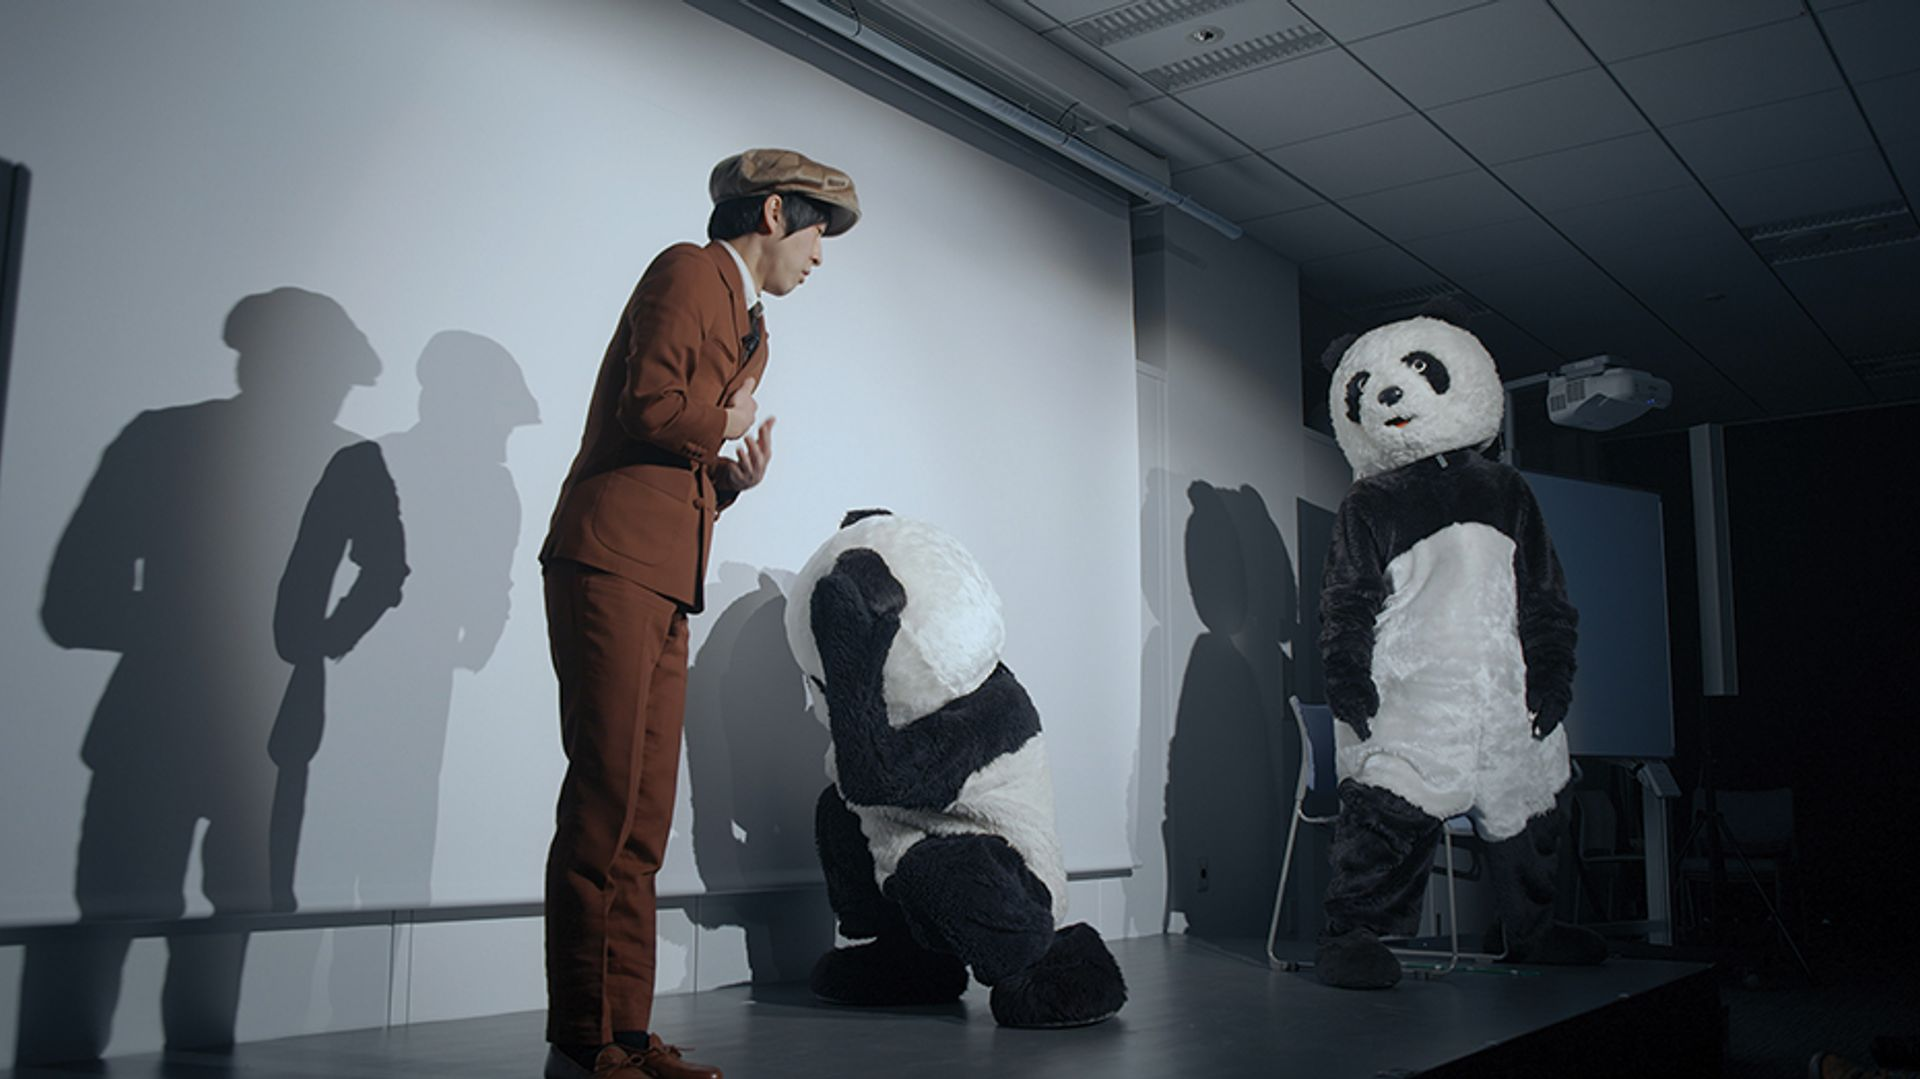 The exhibitors at Taipei Dangdai will include the city's Liang gallery which represents the local artist Hsui Chia-Wei, who created the Zhao Bandi-influenced video installation Black and White–Giant Panda (2018) Courtesy of Taipei Dangdai